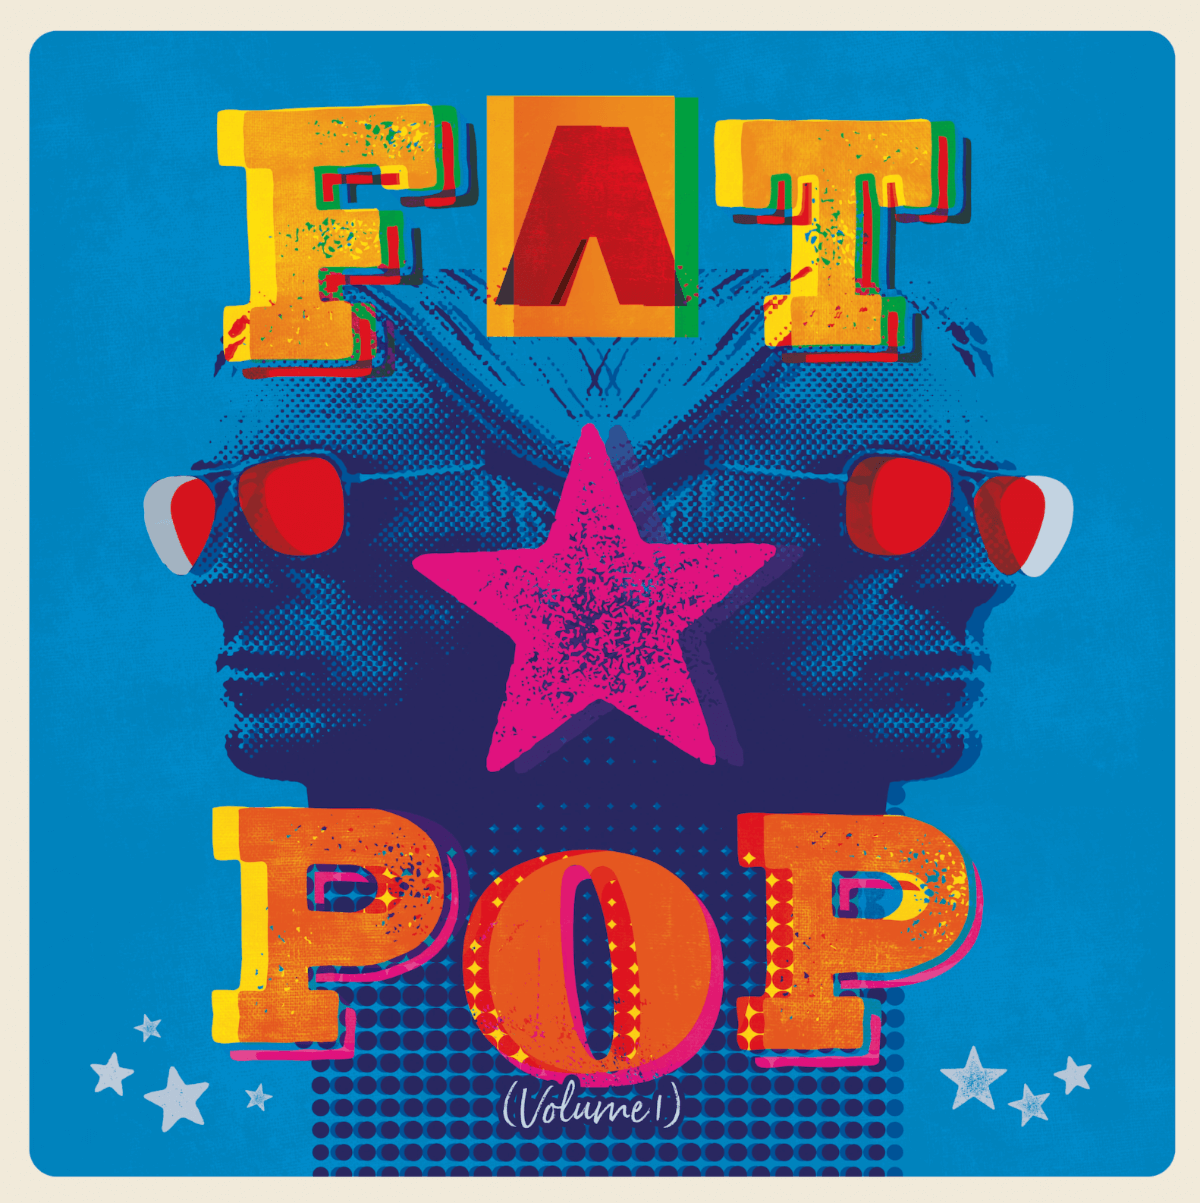 May 14, sees the release of Paul Weller's 16th solo titled Fat Pop (Volume 1). The LP follows his June 2020 full-length On Sunset.